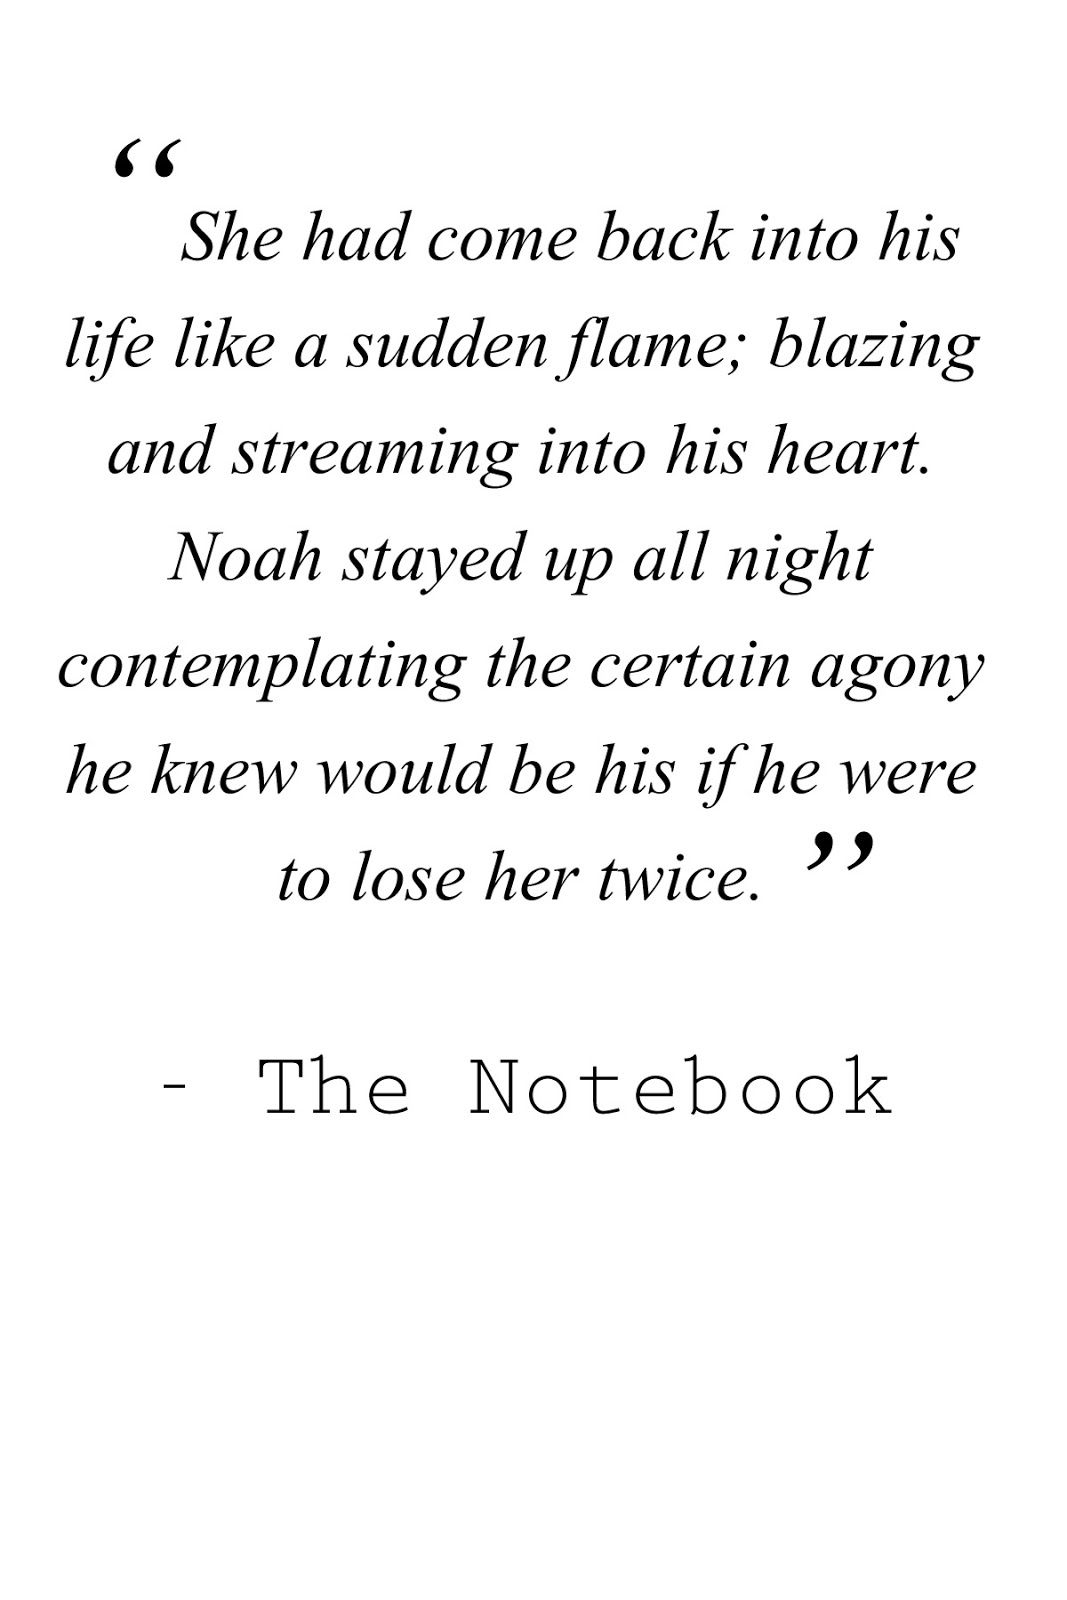 The Notebook Love Quotes The Notebook' quotes | Nicholas Sparks | Pinterest | Quotes, Love  The Notebook Love Quotes